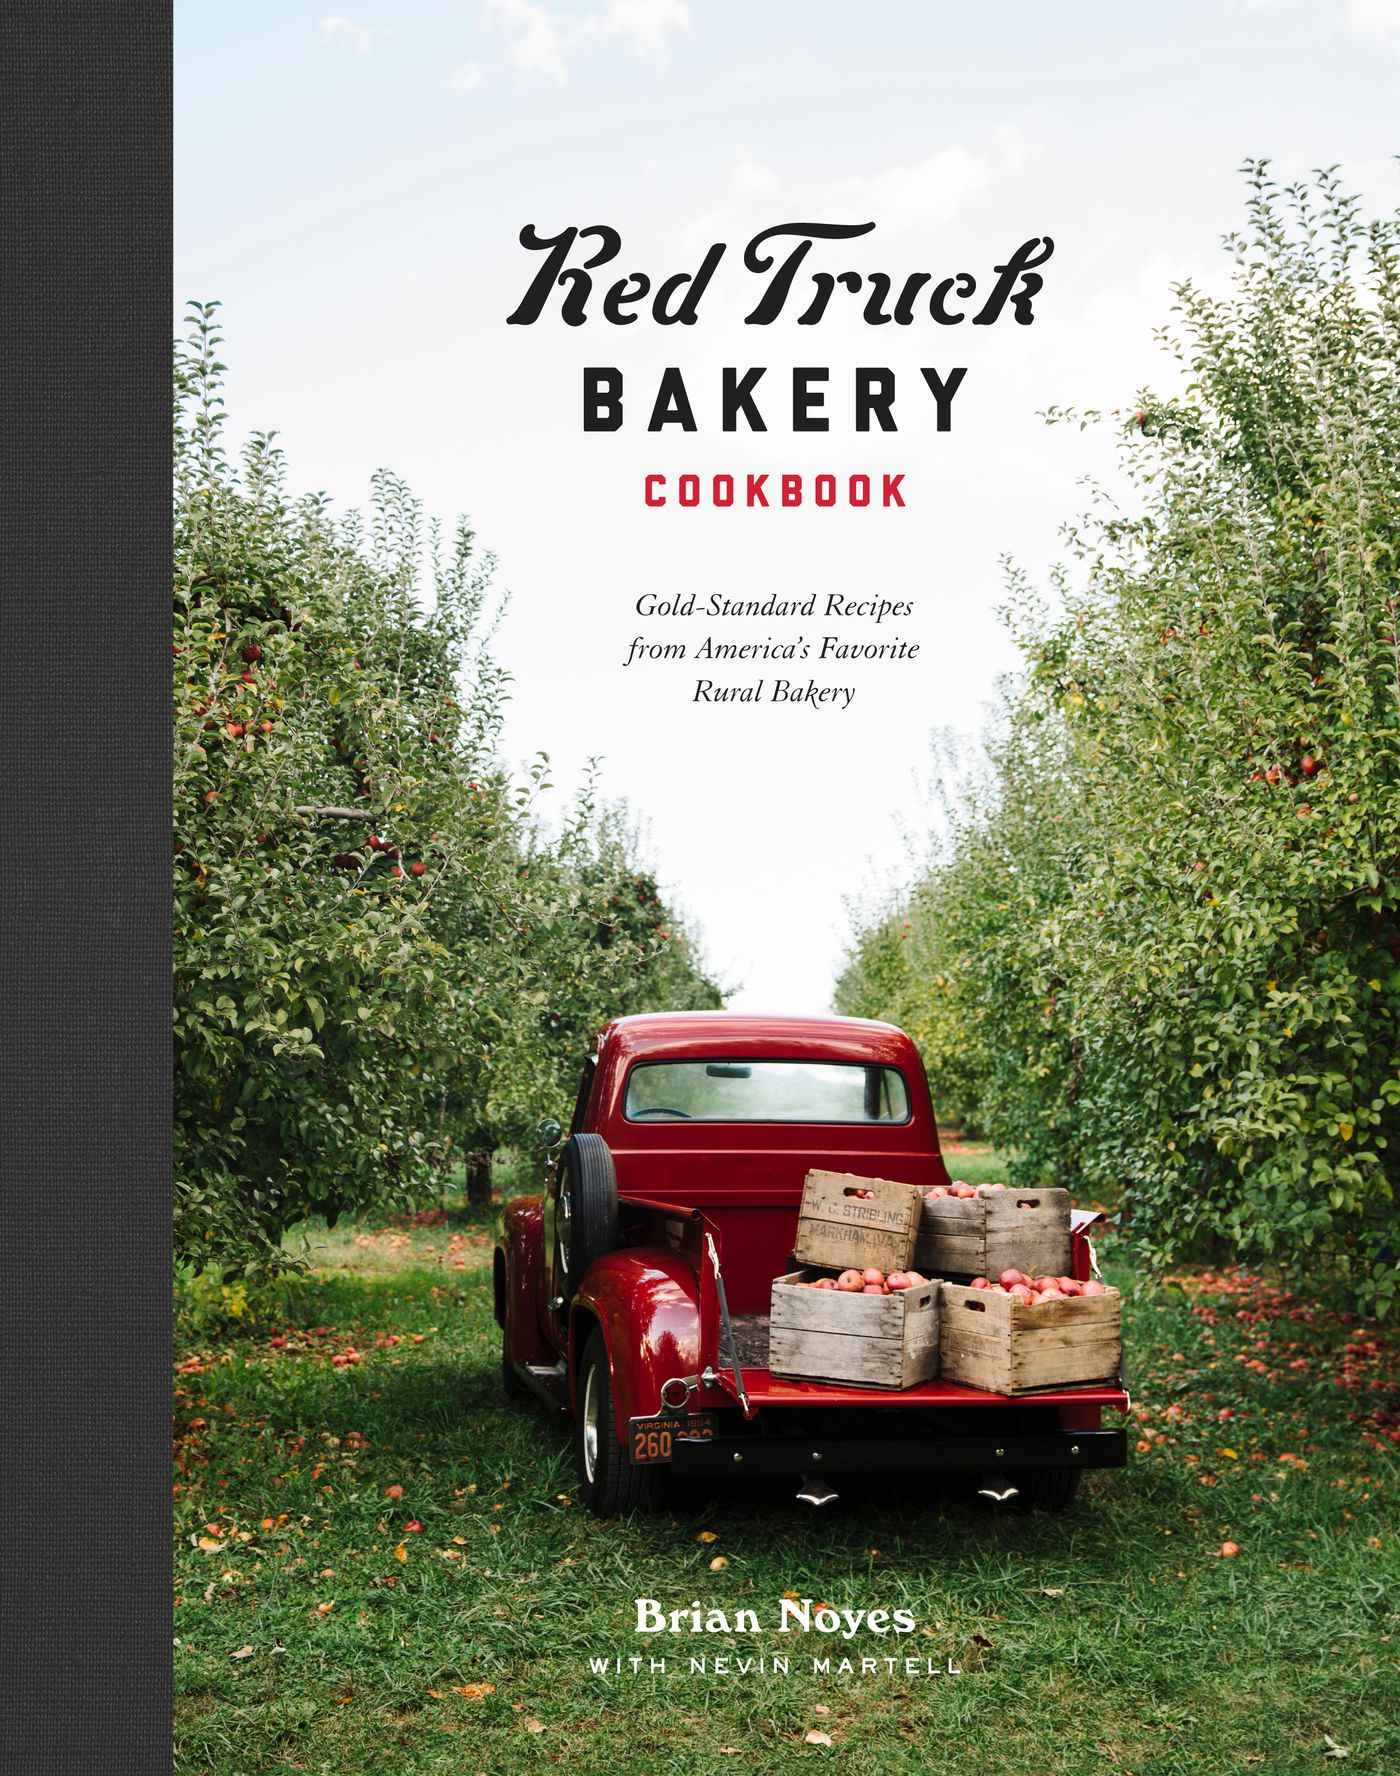 'Red Truck Bakery' will inspire new holiday traditions